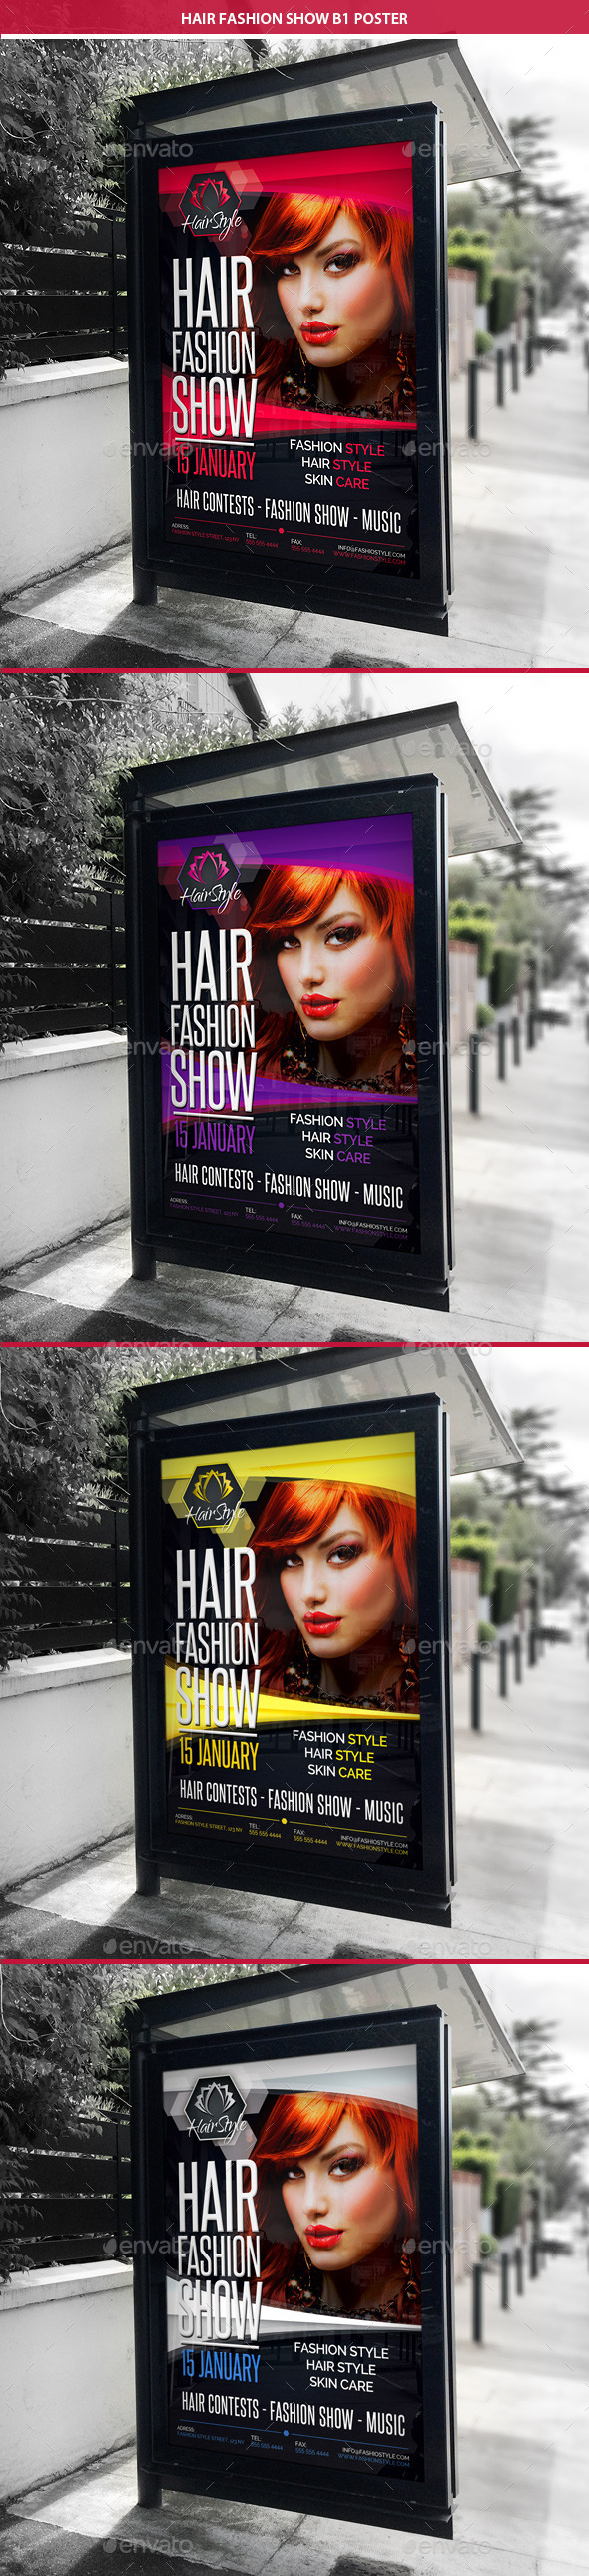 GraphicRiver Hair Fashion Show Promotion B1 Poster 11034001